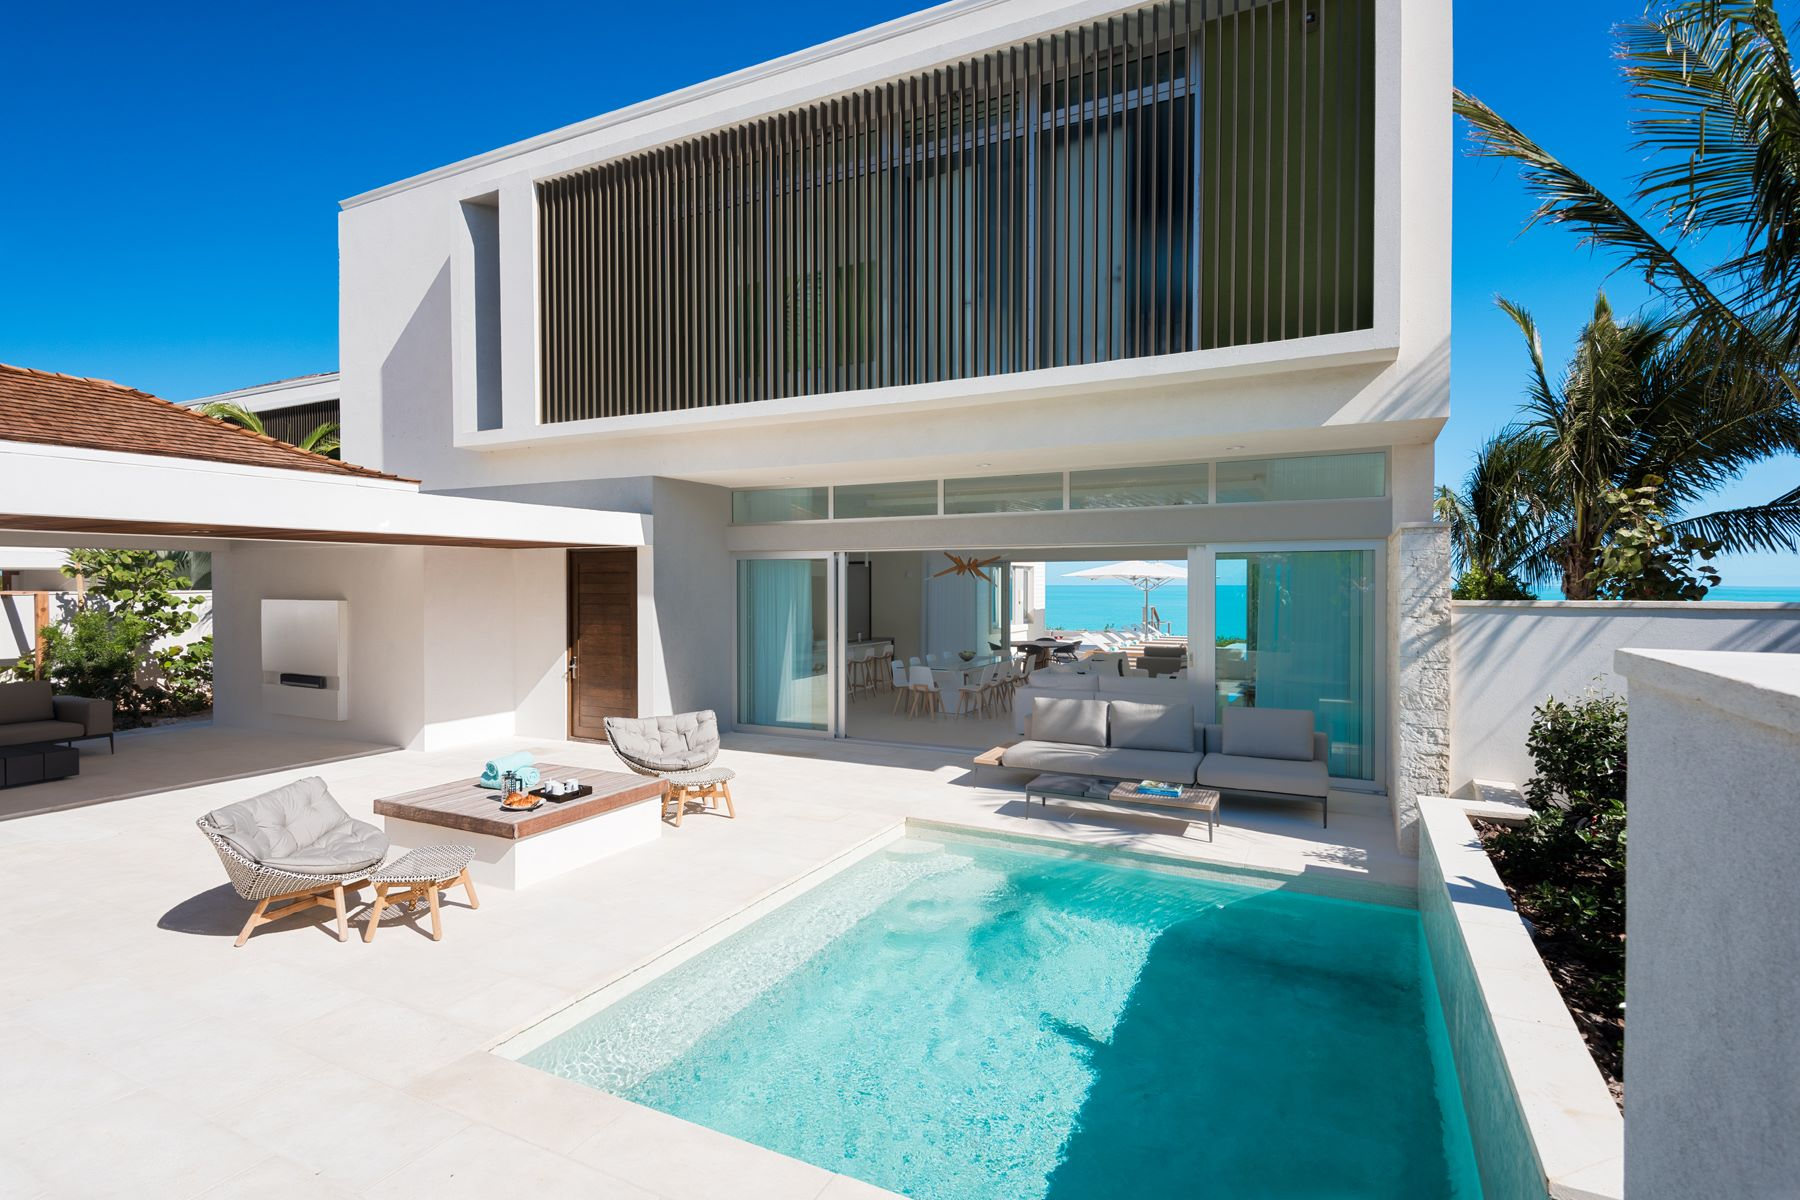 Single Family Home for Sale at Gansevoort Villa 5102 - 4 Bedroom Design Waterfront Turtle Tail, Providenciales TCI Turks And Caicos Islands